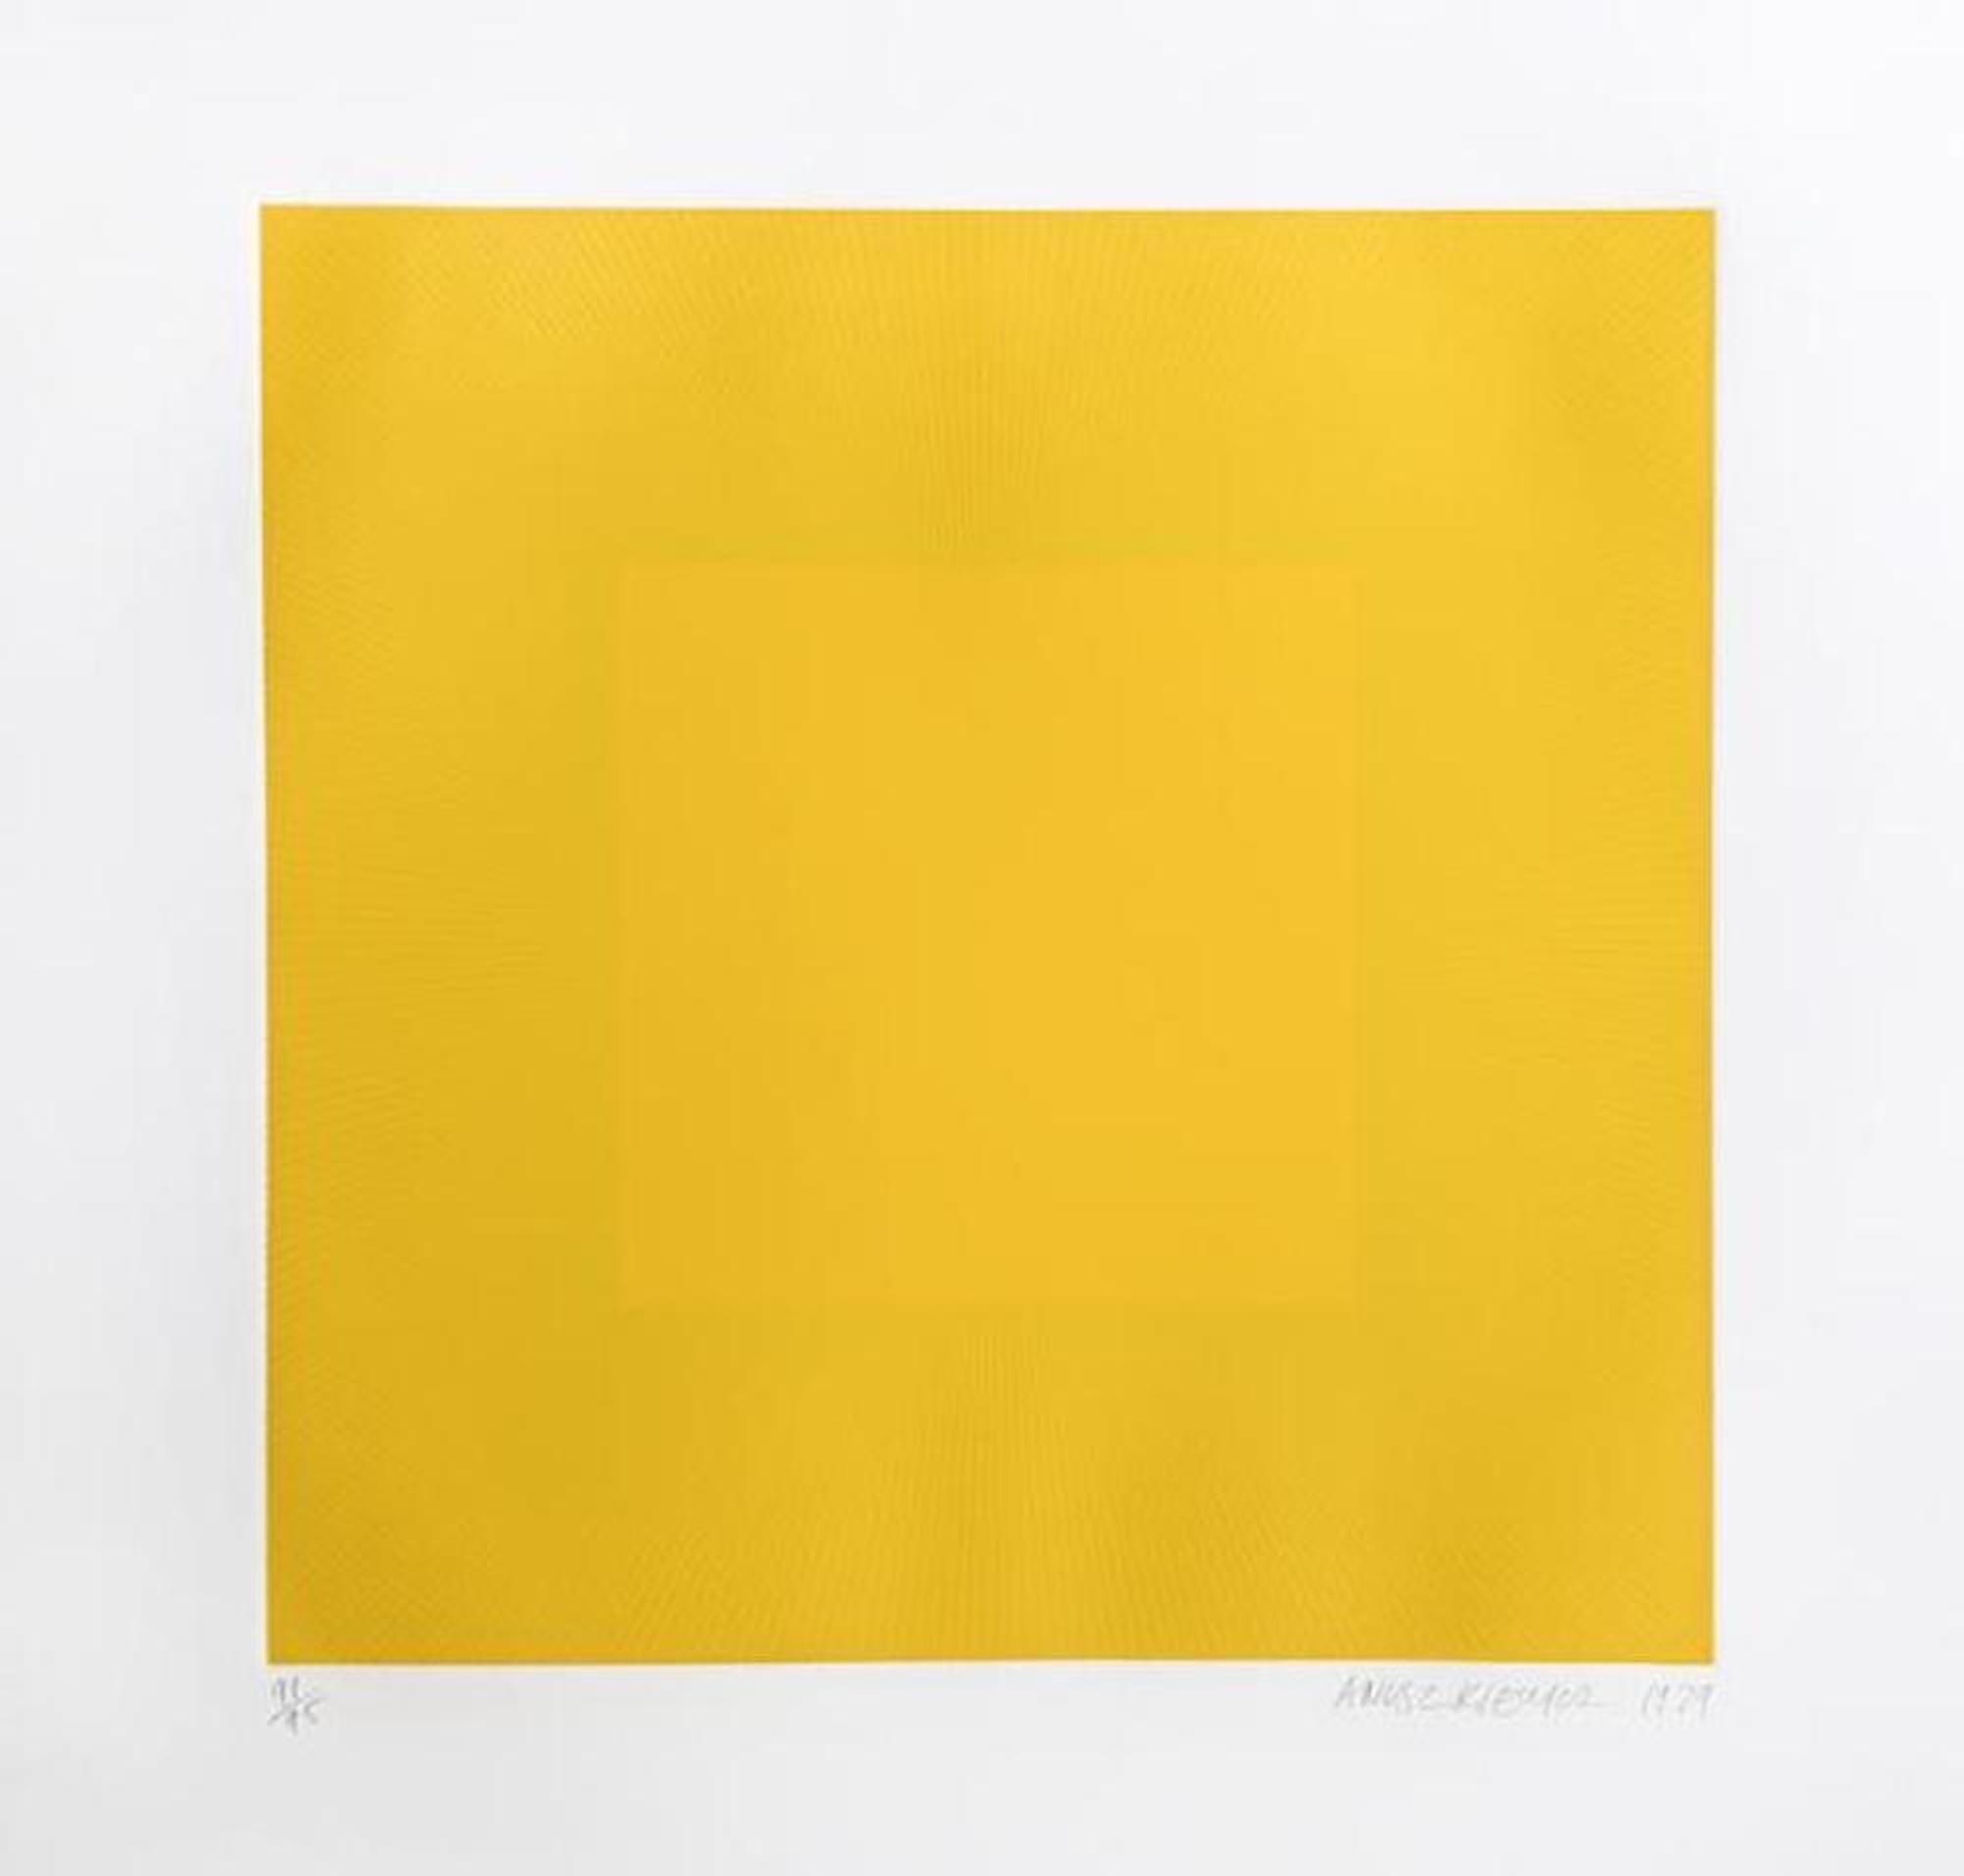 Spring Suite (Yellow with Yellow) by Richard Anuszkiewicz